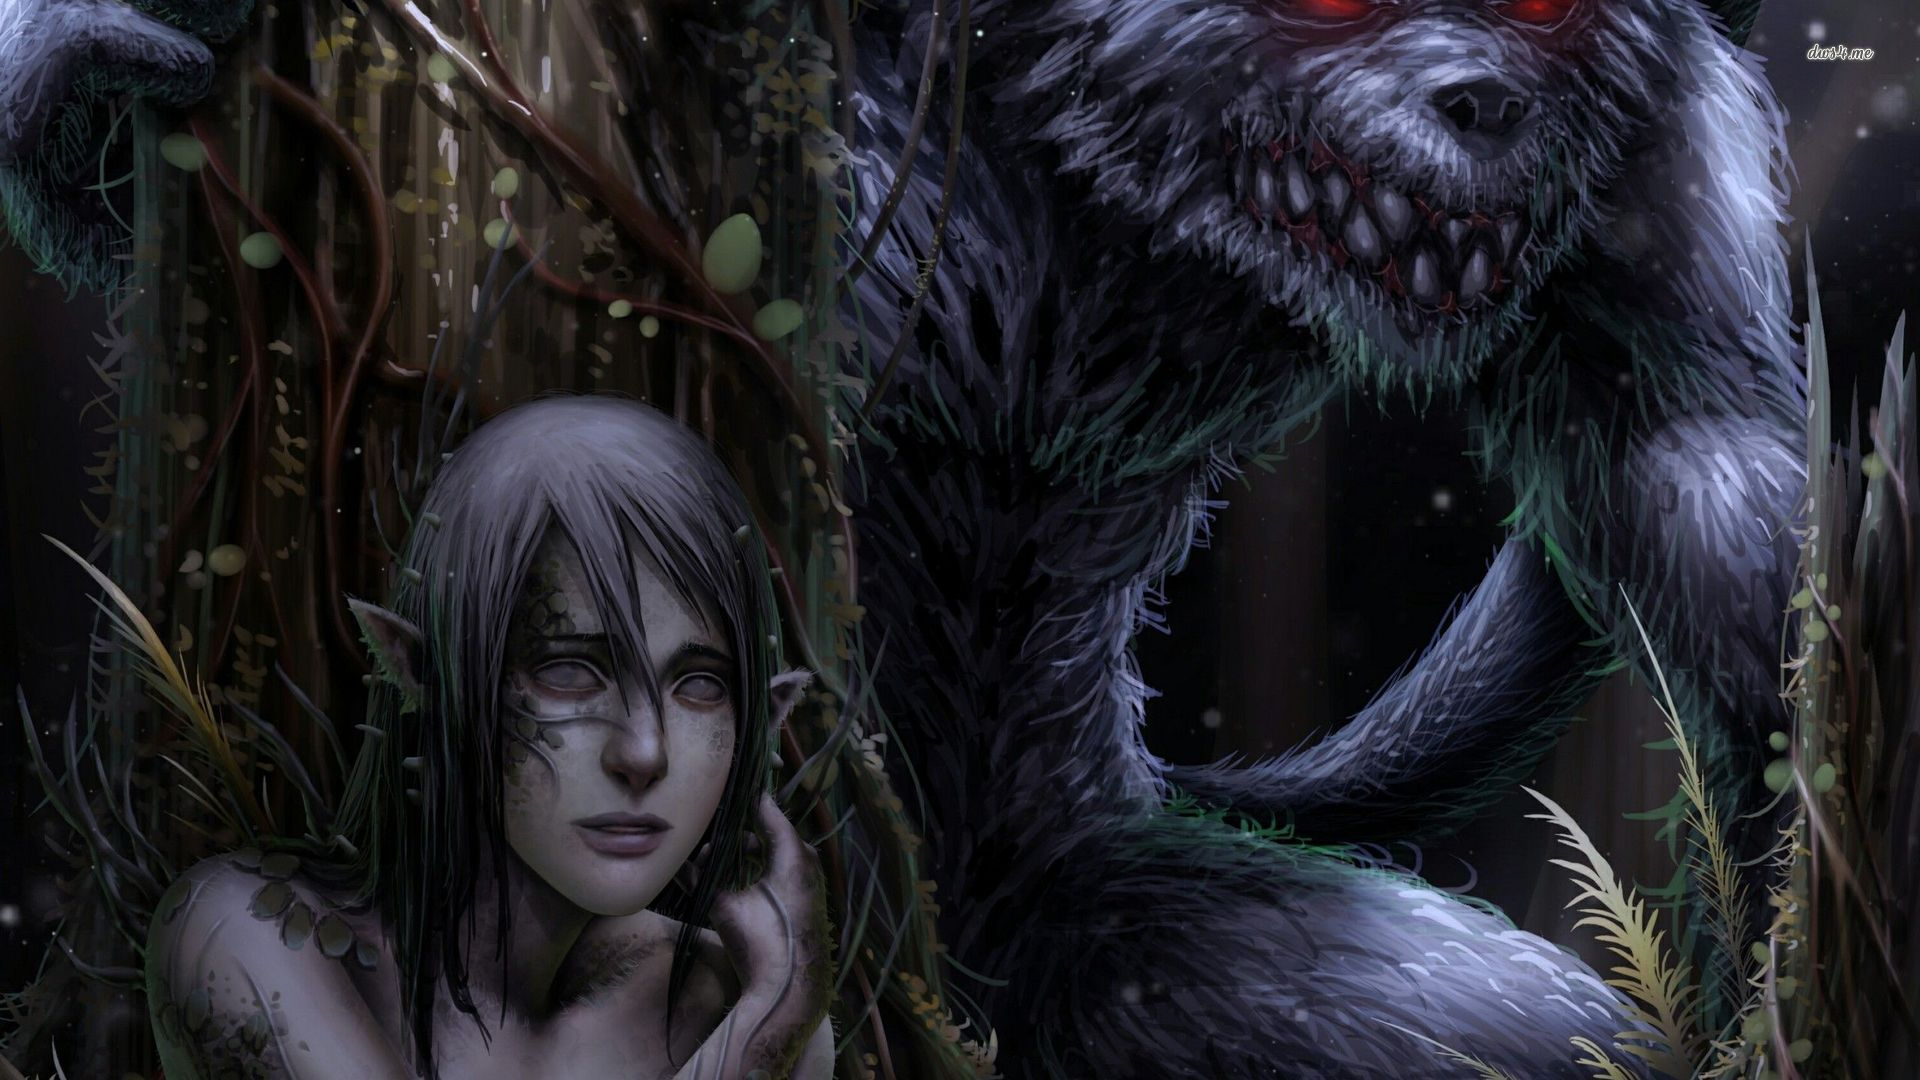 Elf And A Werewolf Wallpaper Fantasy Wallpapers 31023 1920x1080